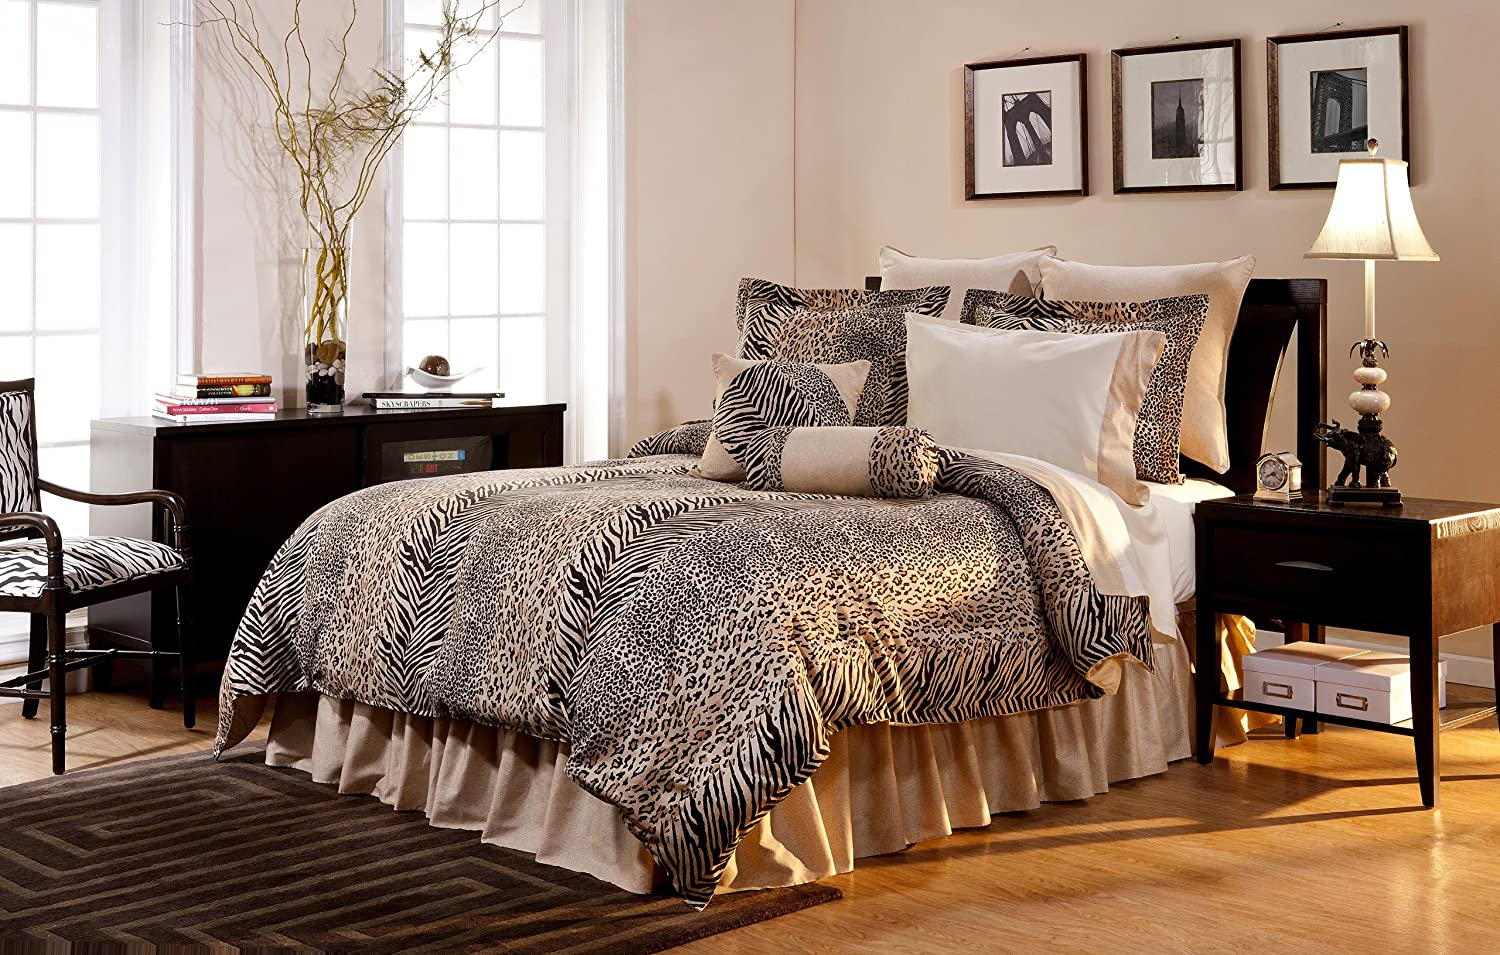 Animal Print Bedding Safari Bedding Comforters Ease